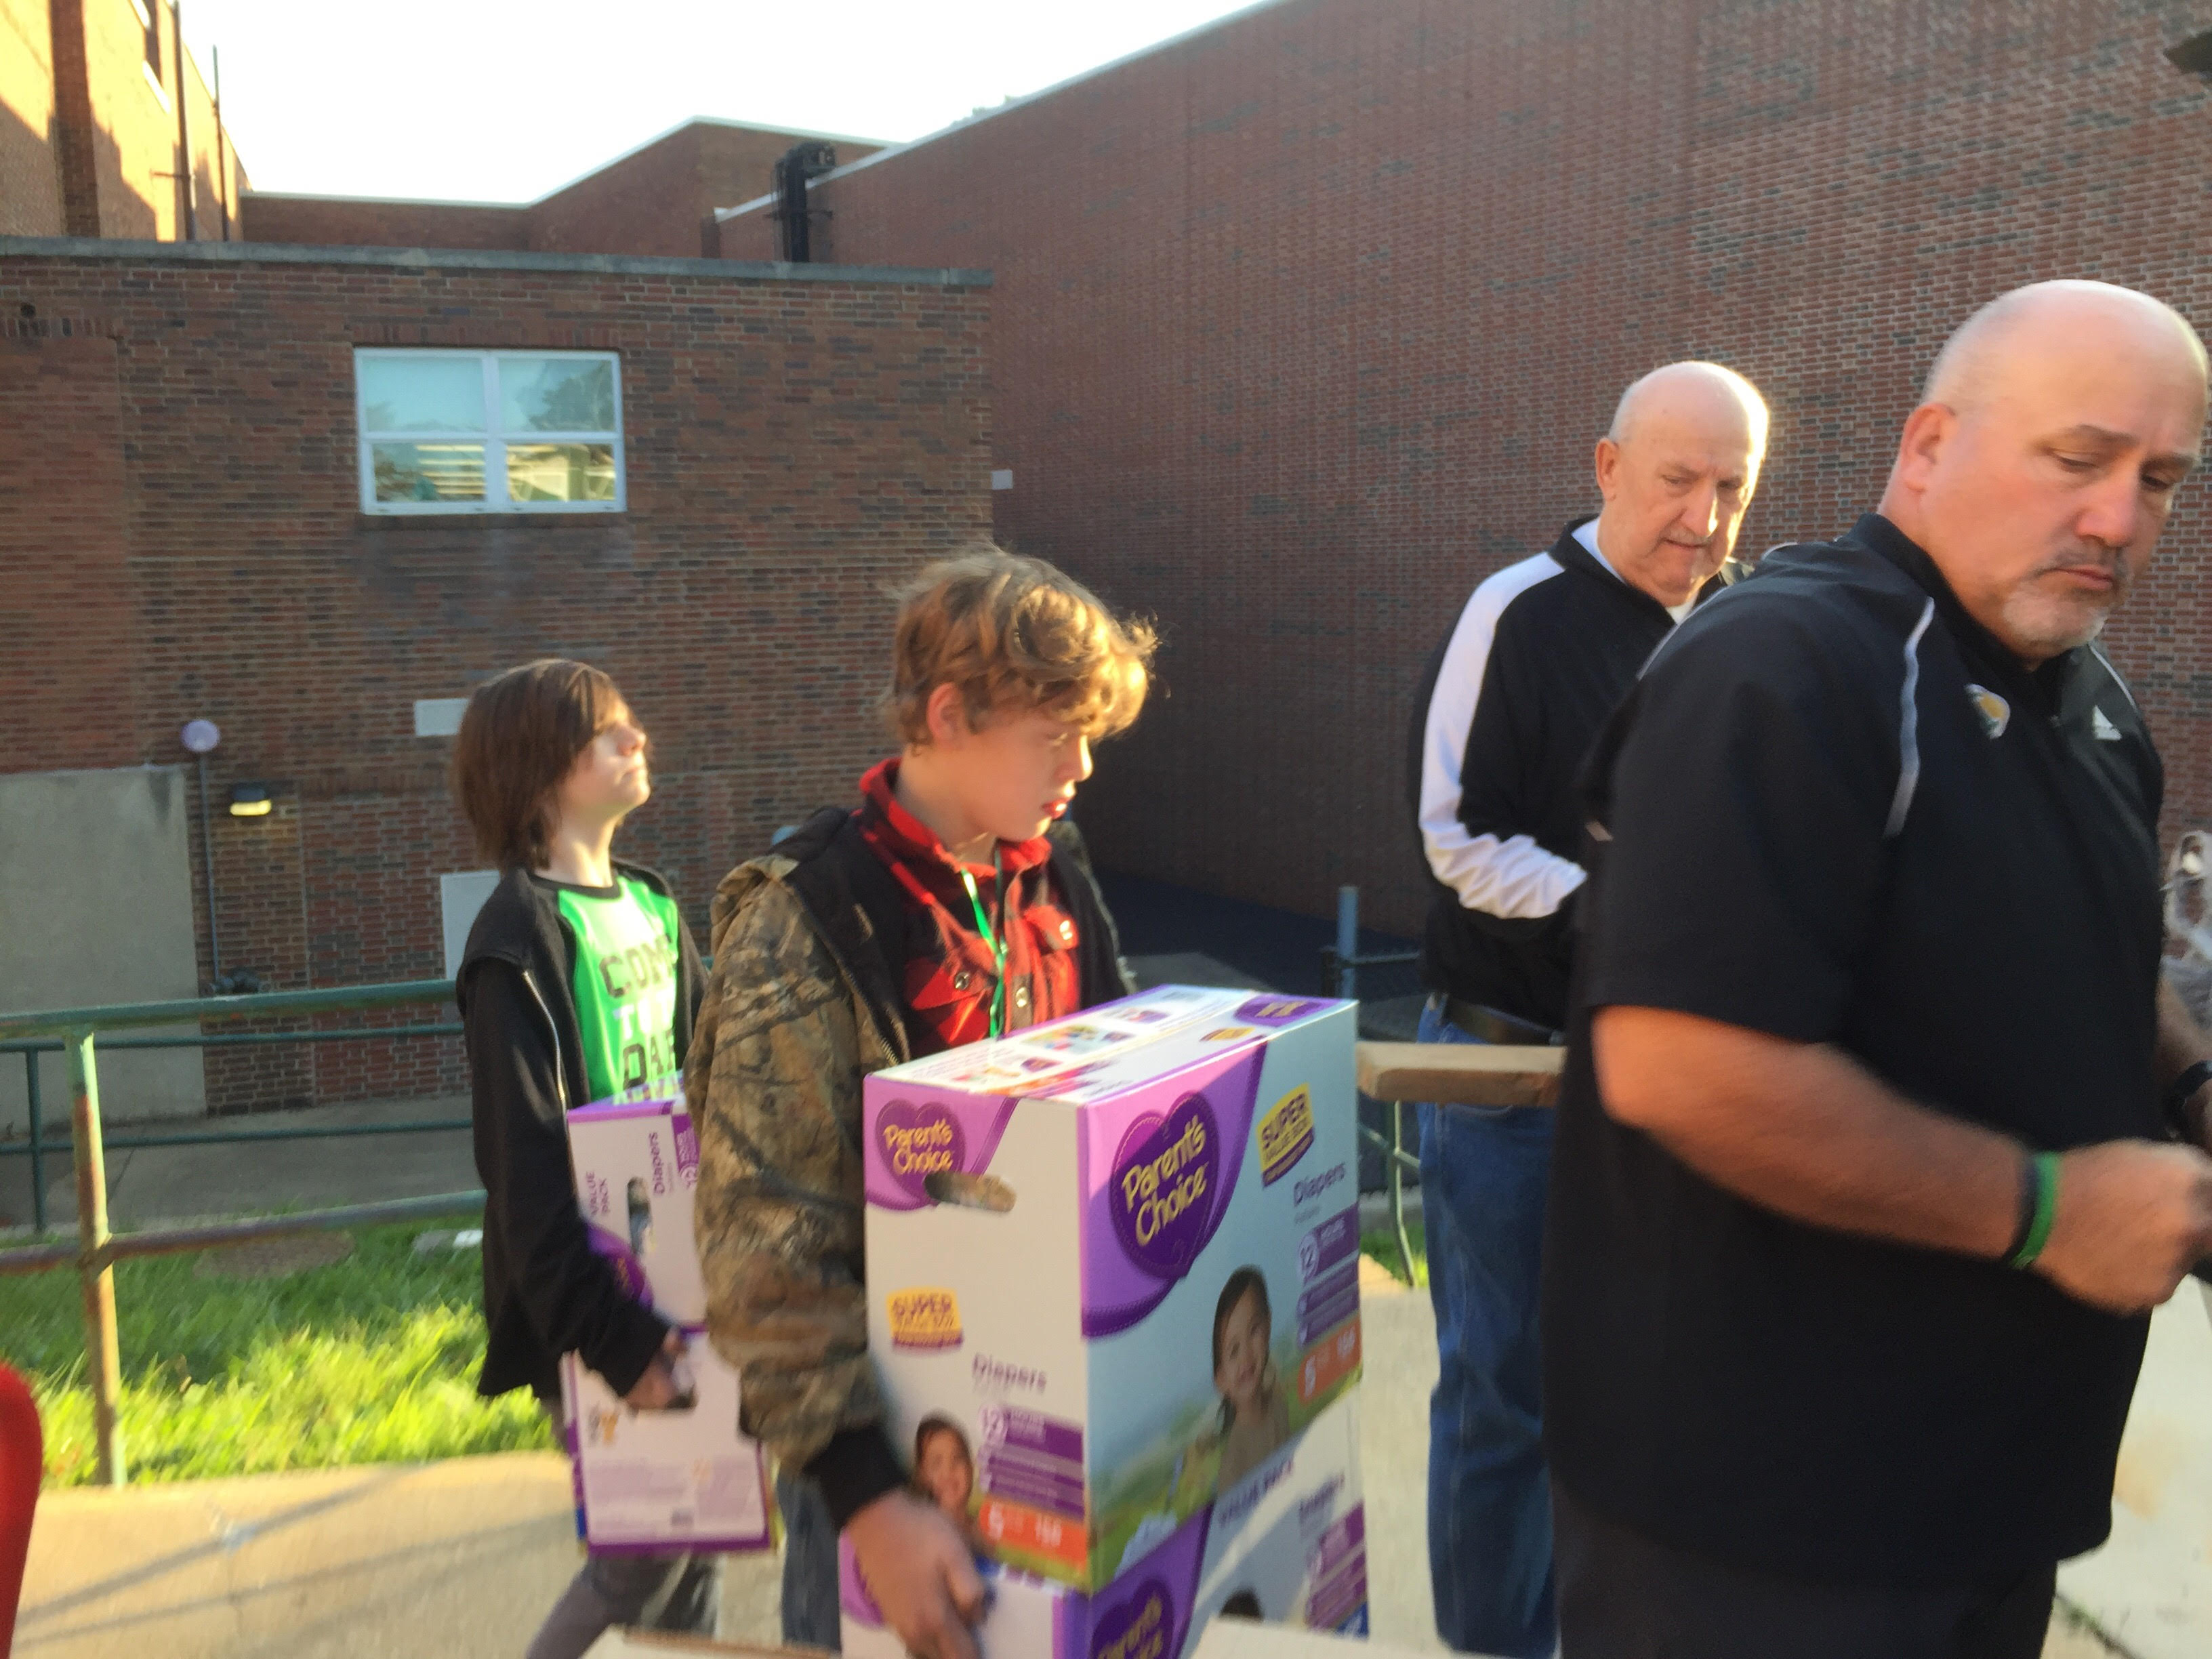 Mr. Kostival and Mr. Ricketts help students load the truck